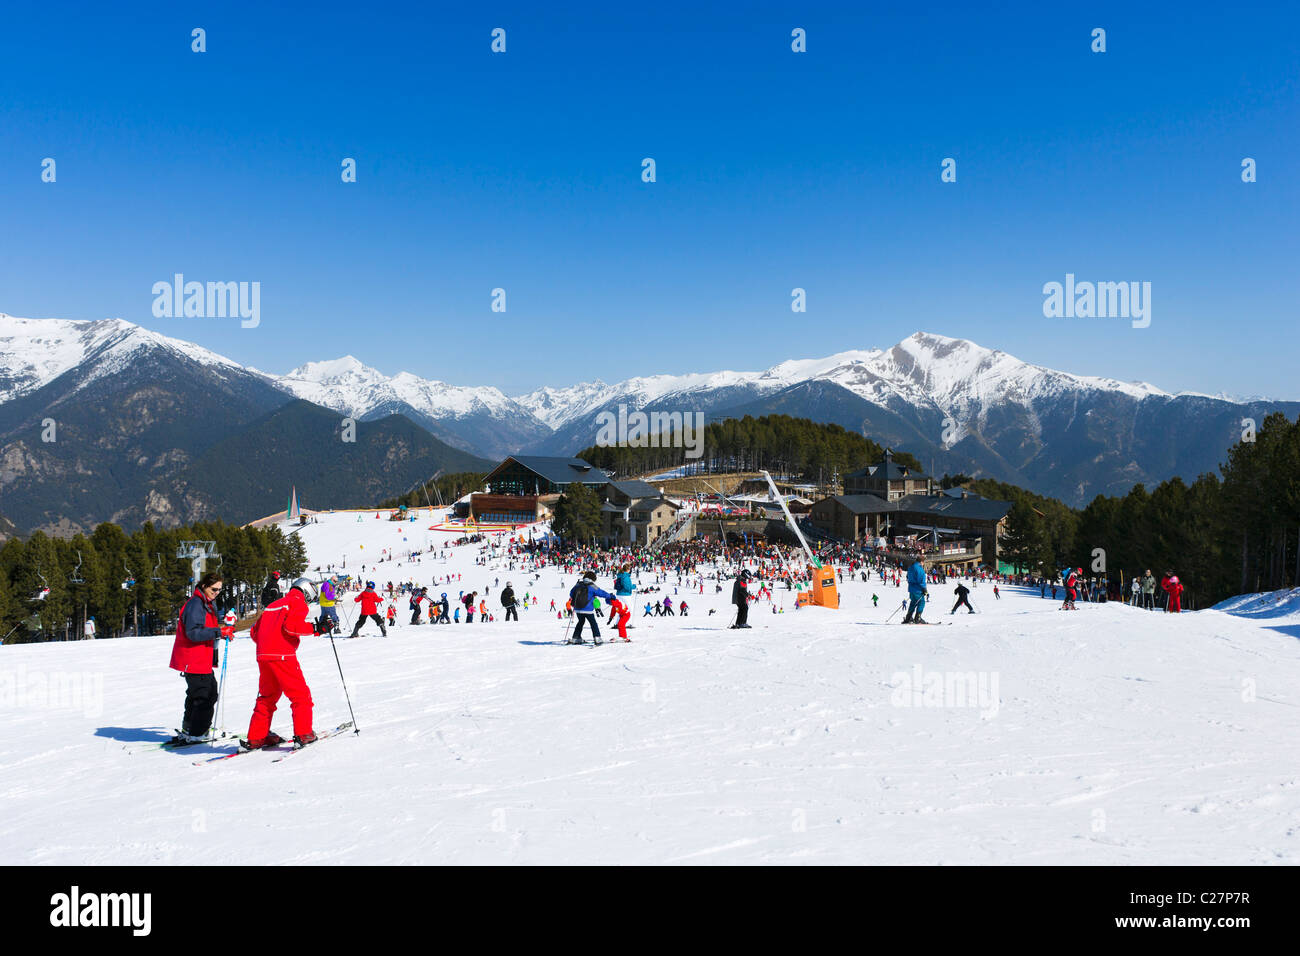 View down the nursery slopes in Pal, Vallnord Ski Area, Andorra - Stock Image